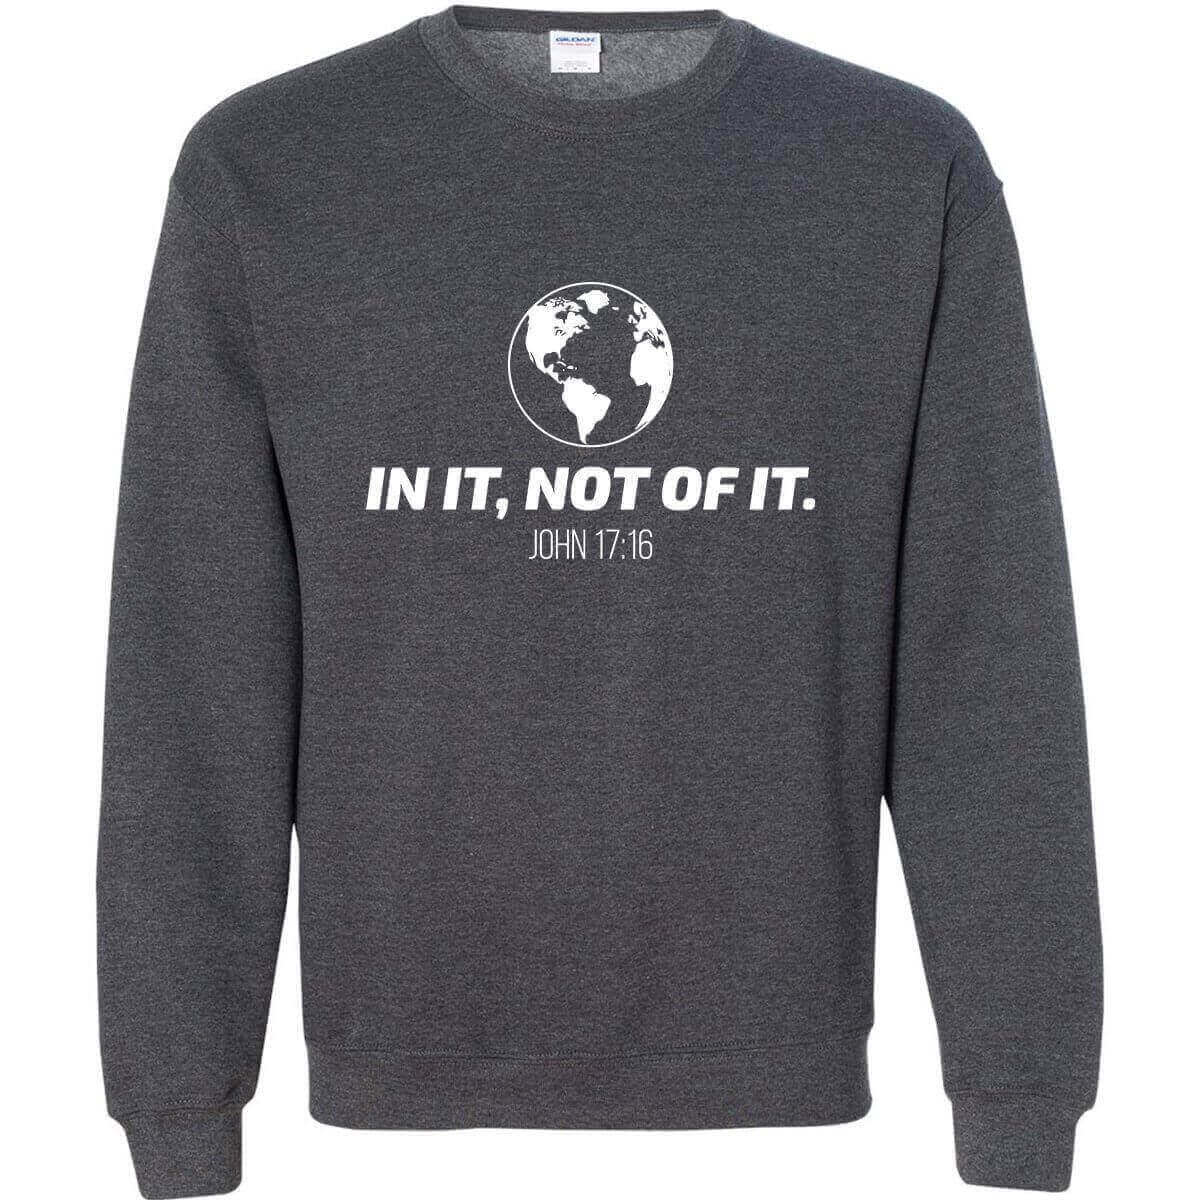 In It, Not Of It Christian Crewneck Unisex Sweatshirt